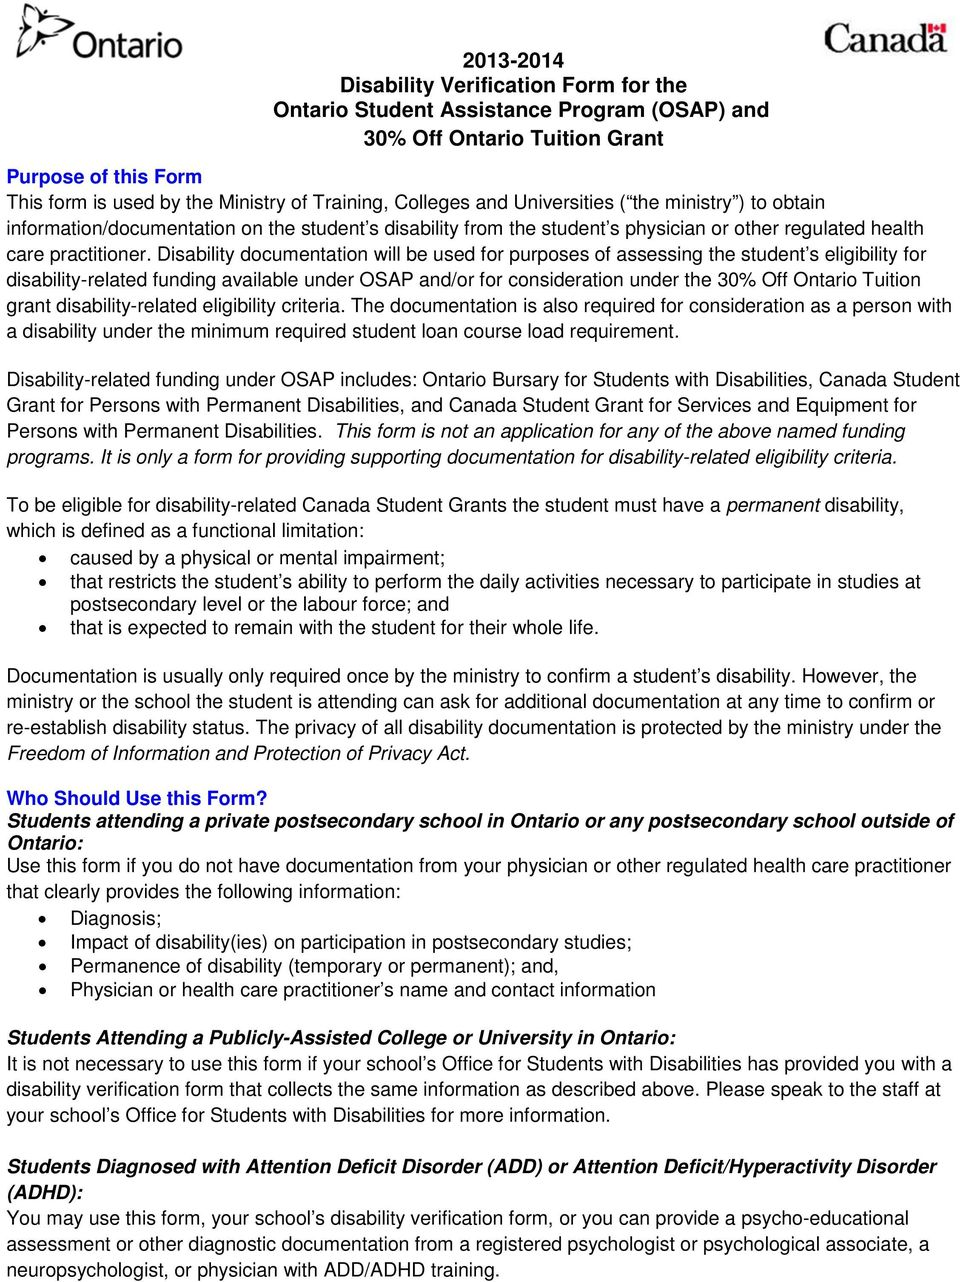 Disability documentation will be used for purposes of assessing the student s eligibility for disability-related funding available under OSAP and/or for consideration under the 30% Off Ontario